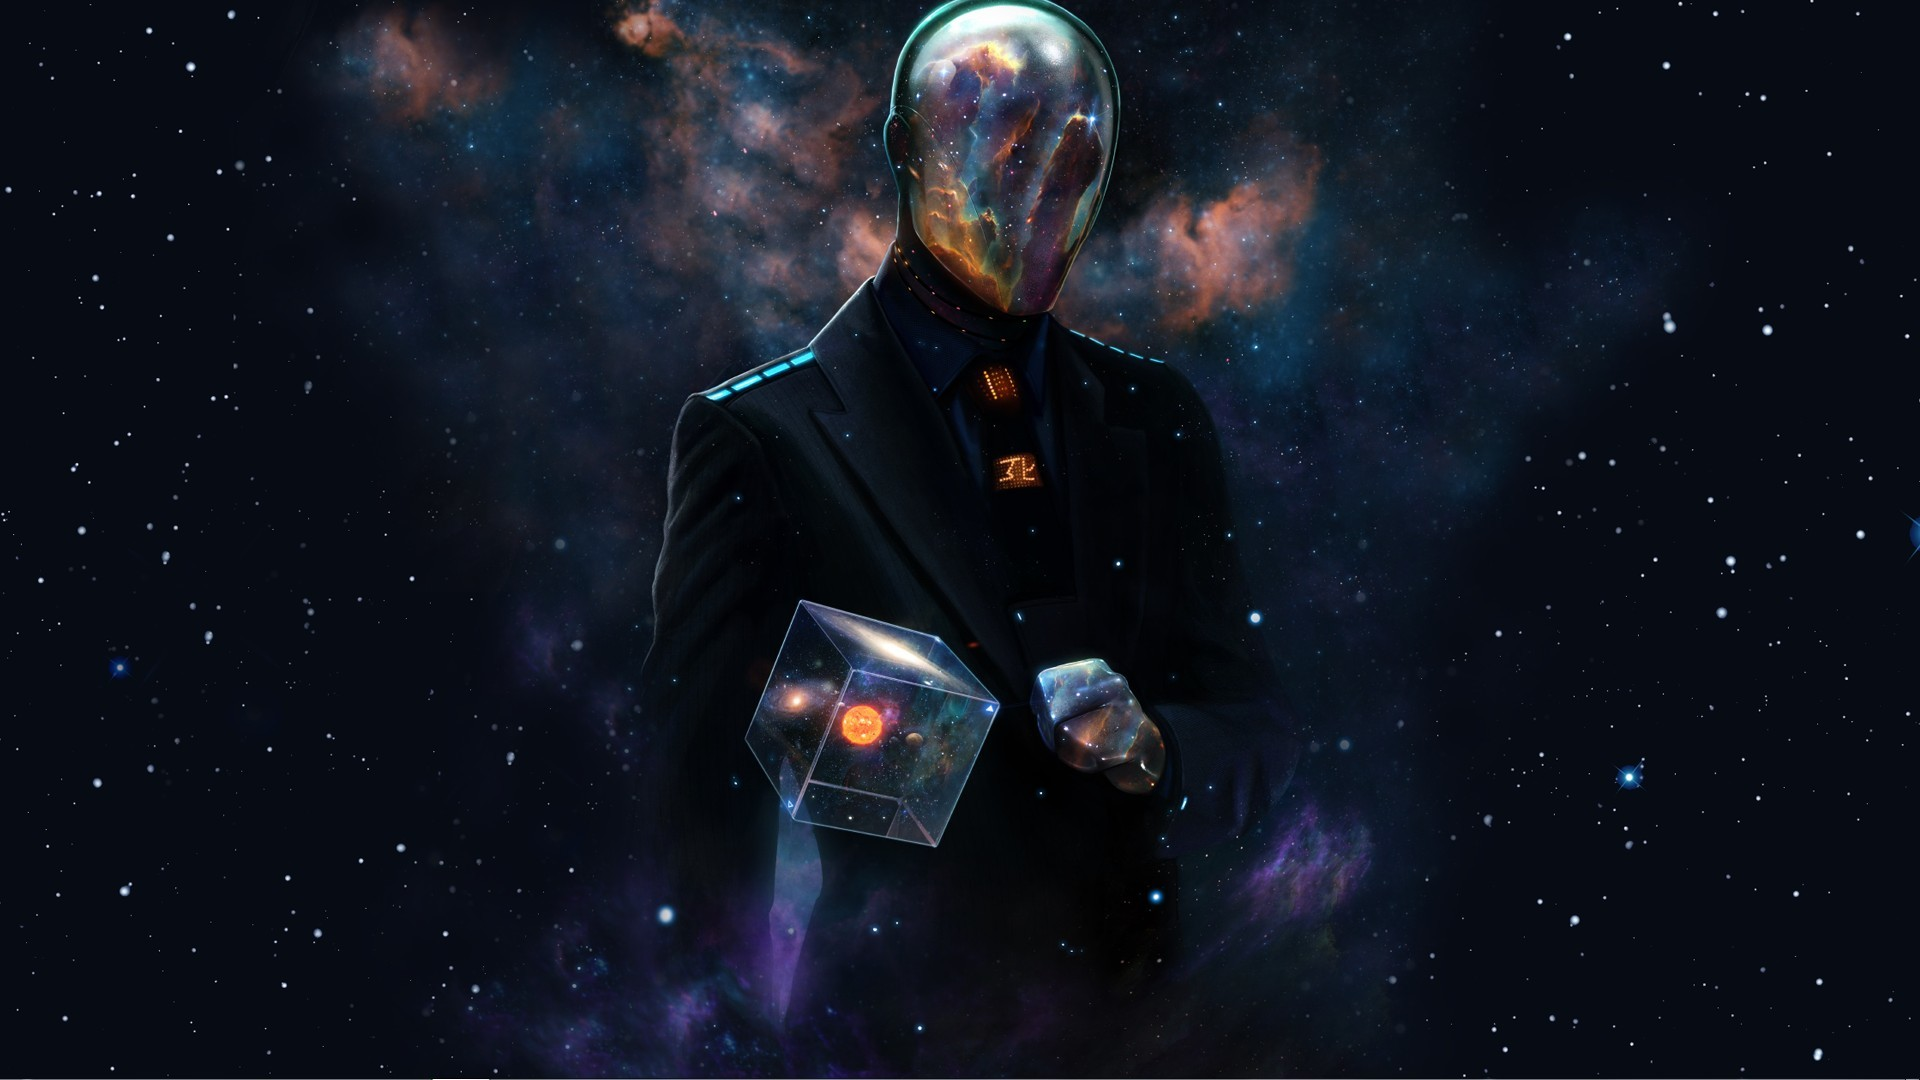 Abstract outer space dan luvisi cube wallpaper